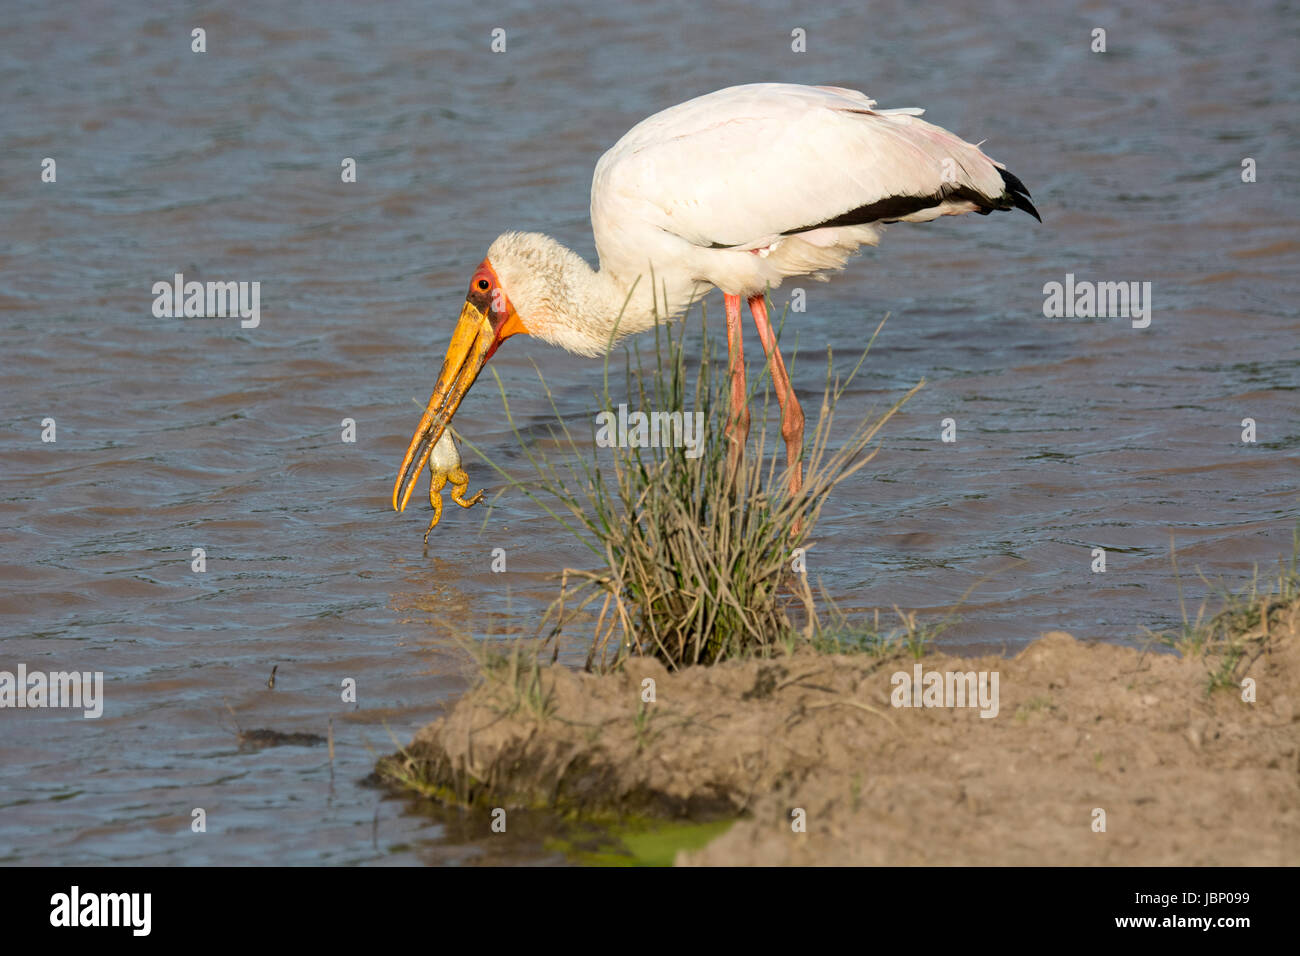 Yellow-billed Stork, Mycteria ibis, catching and eating a frog in the Masai Mara National Reserve, Kenya, East Africa - Stock Image